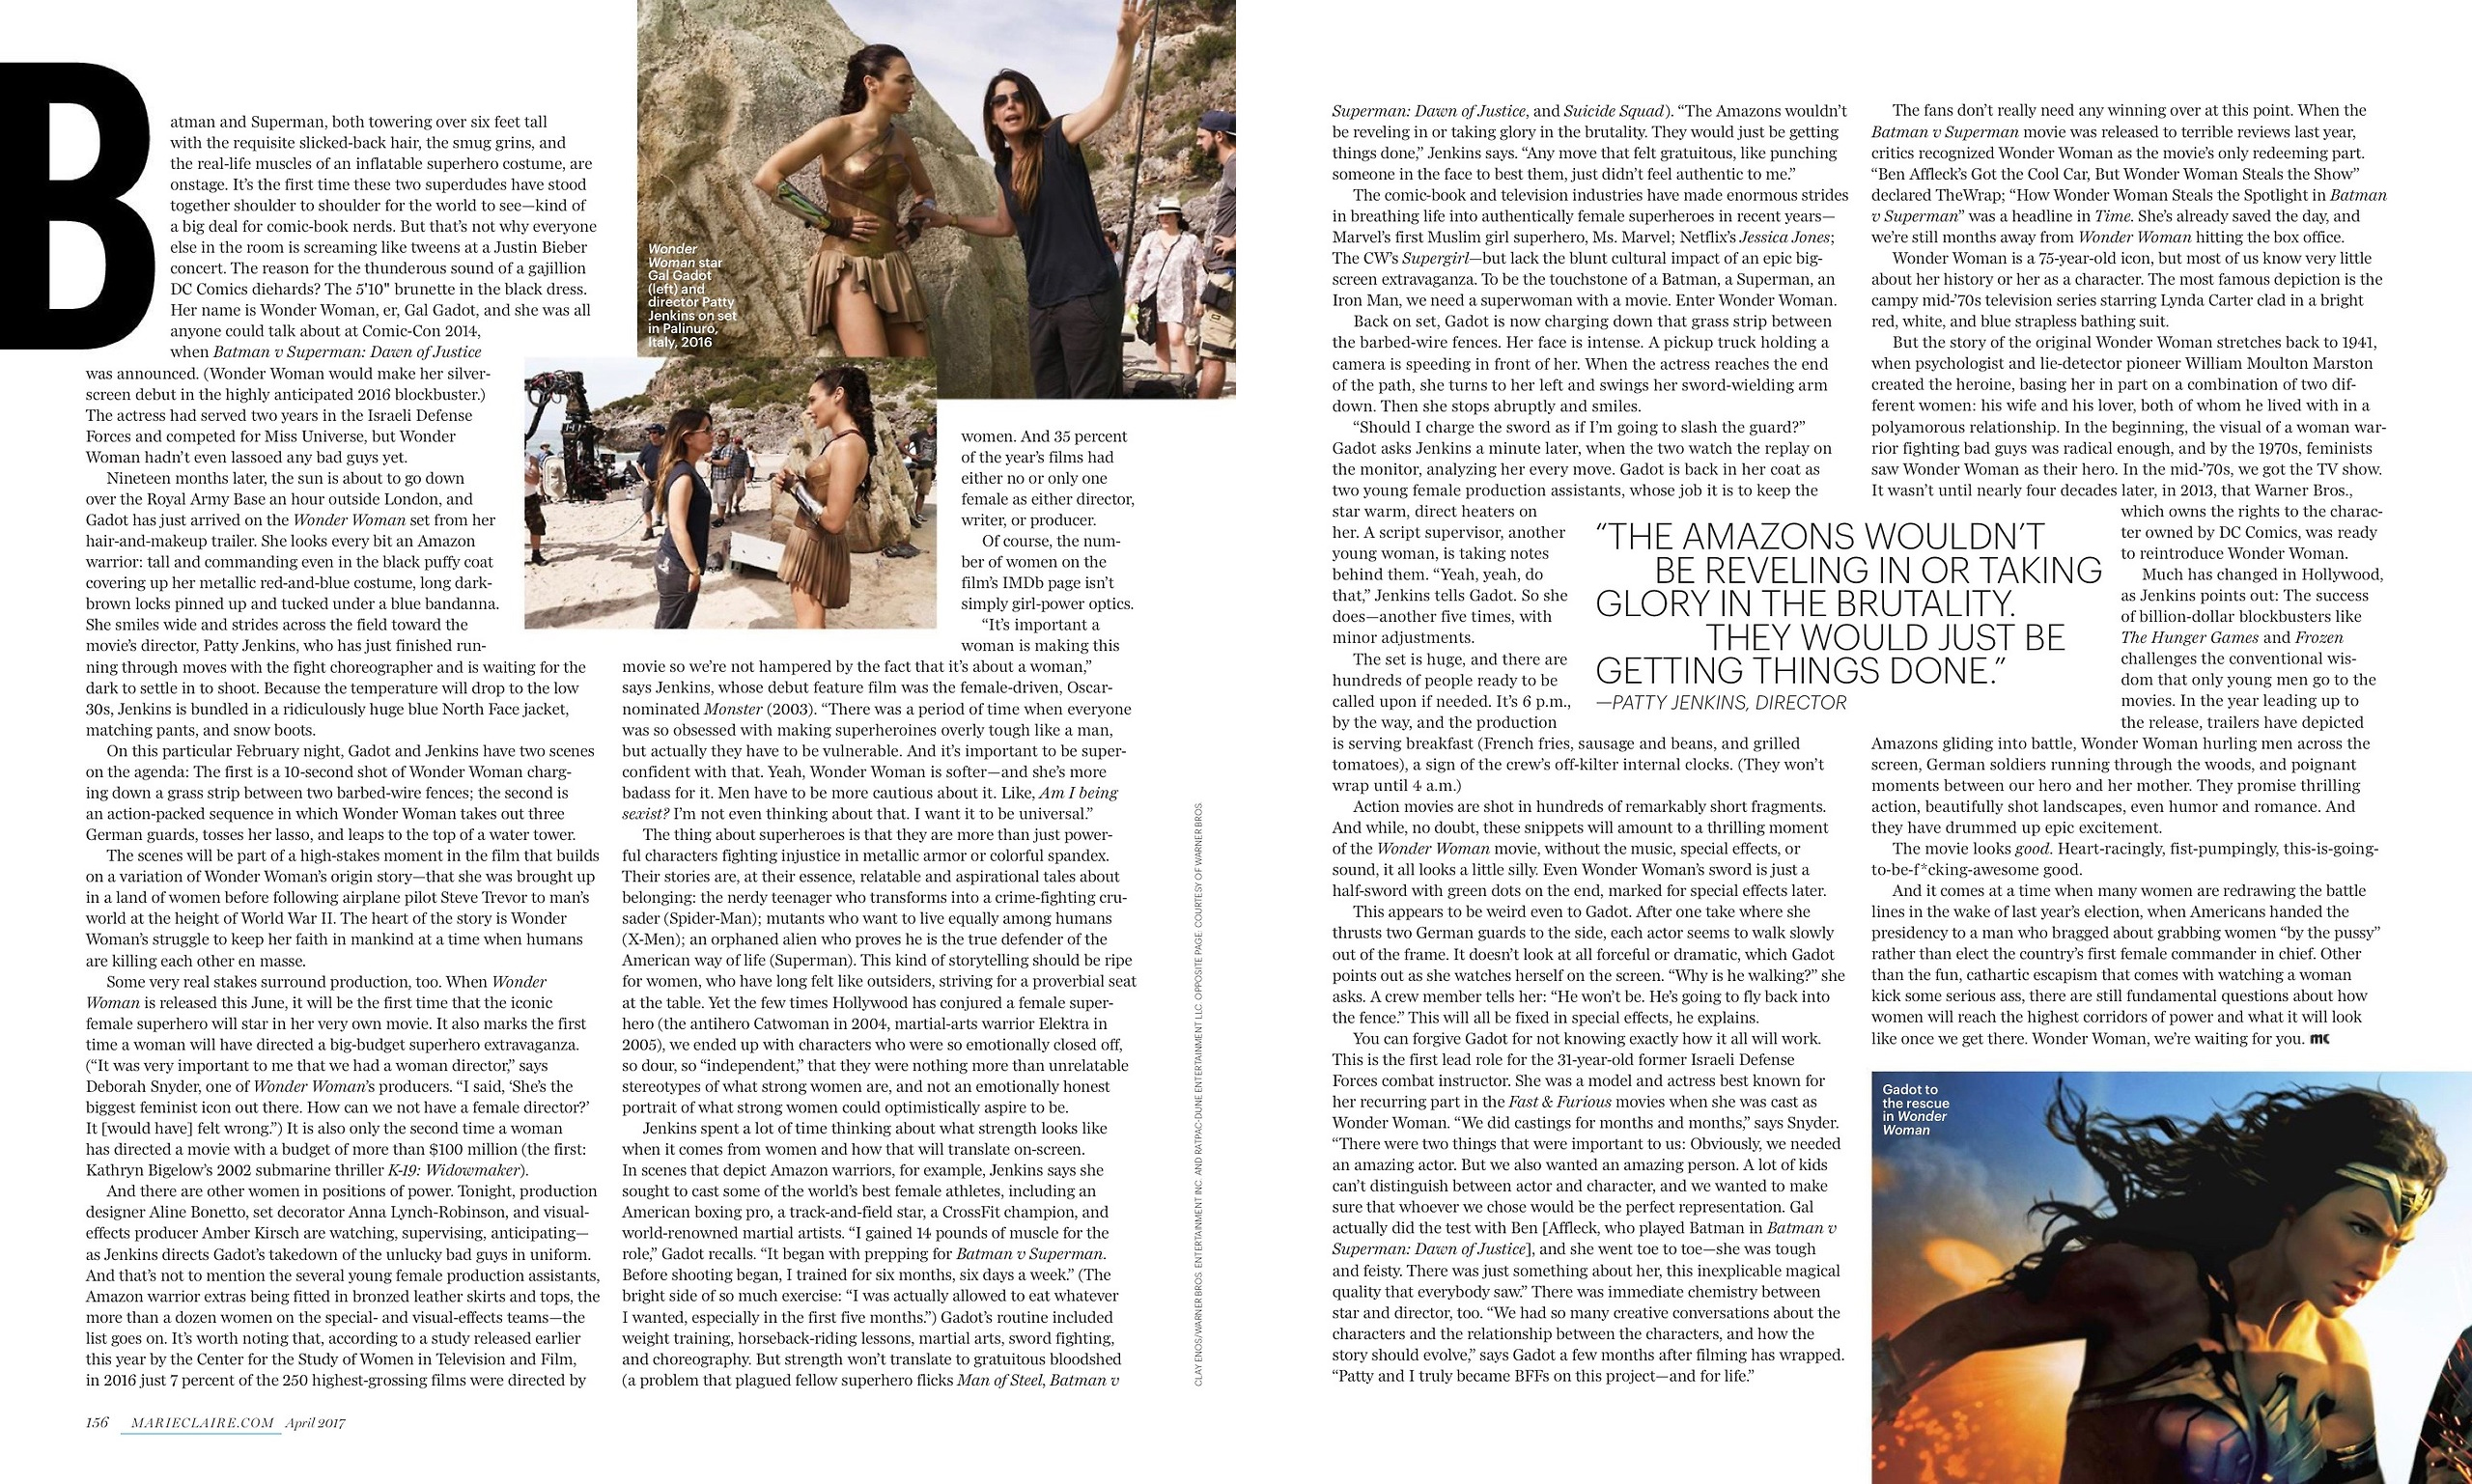 Wonder Woman - Is This The Most Feminist Movie Ever Made? - Marie Claire - April 2017 [2/2]